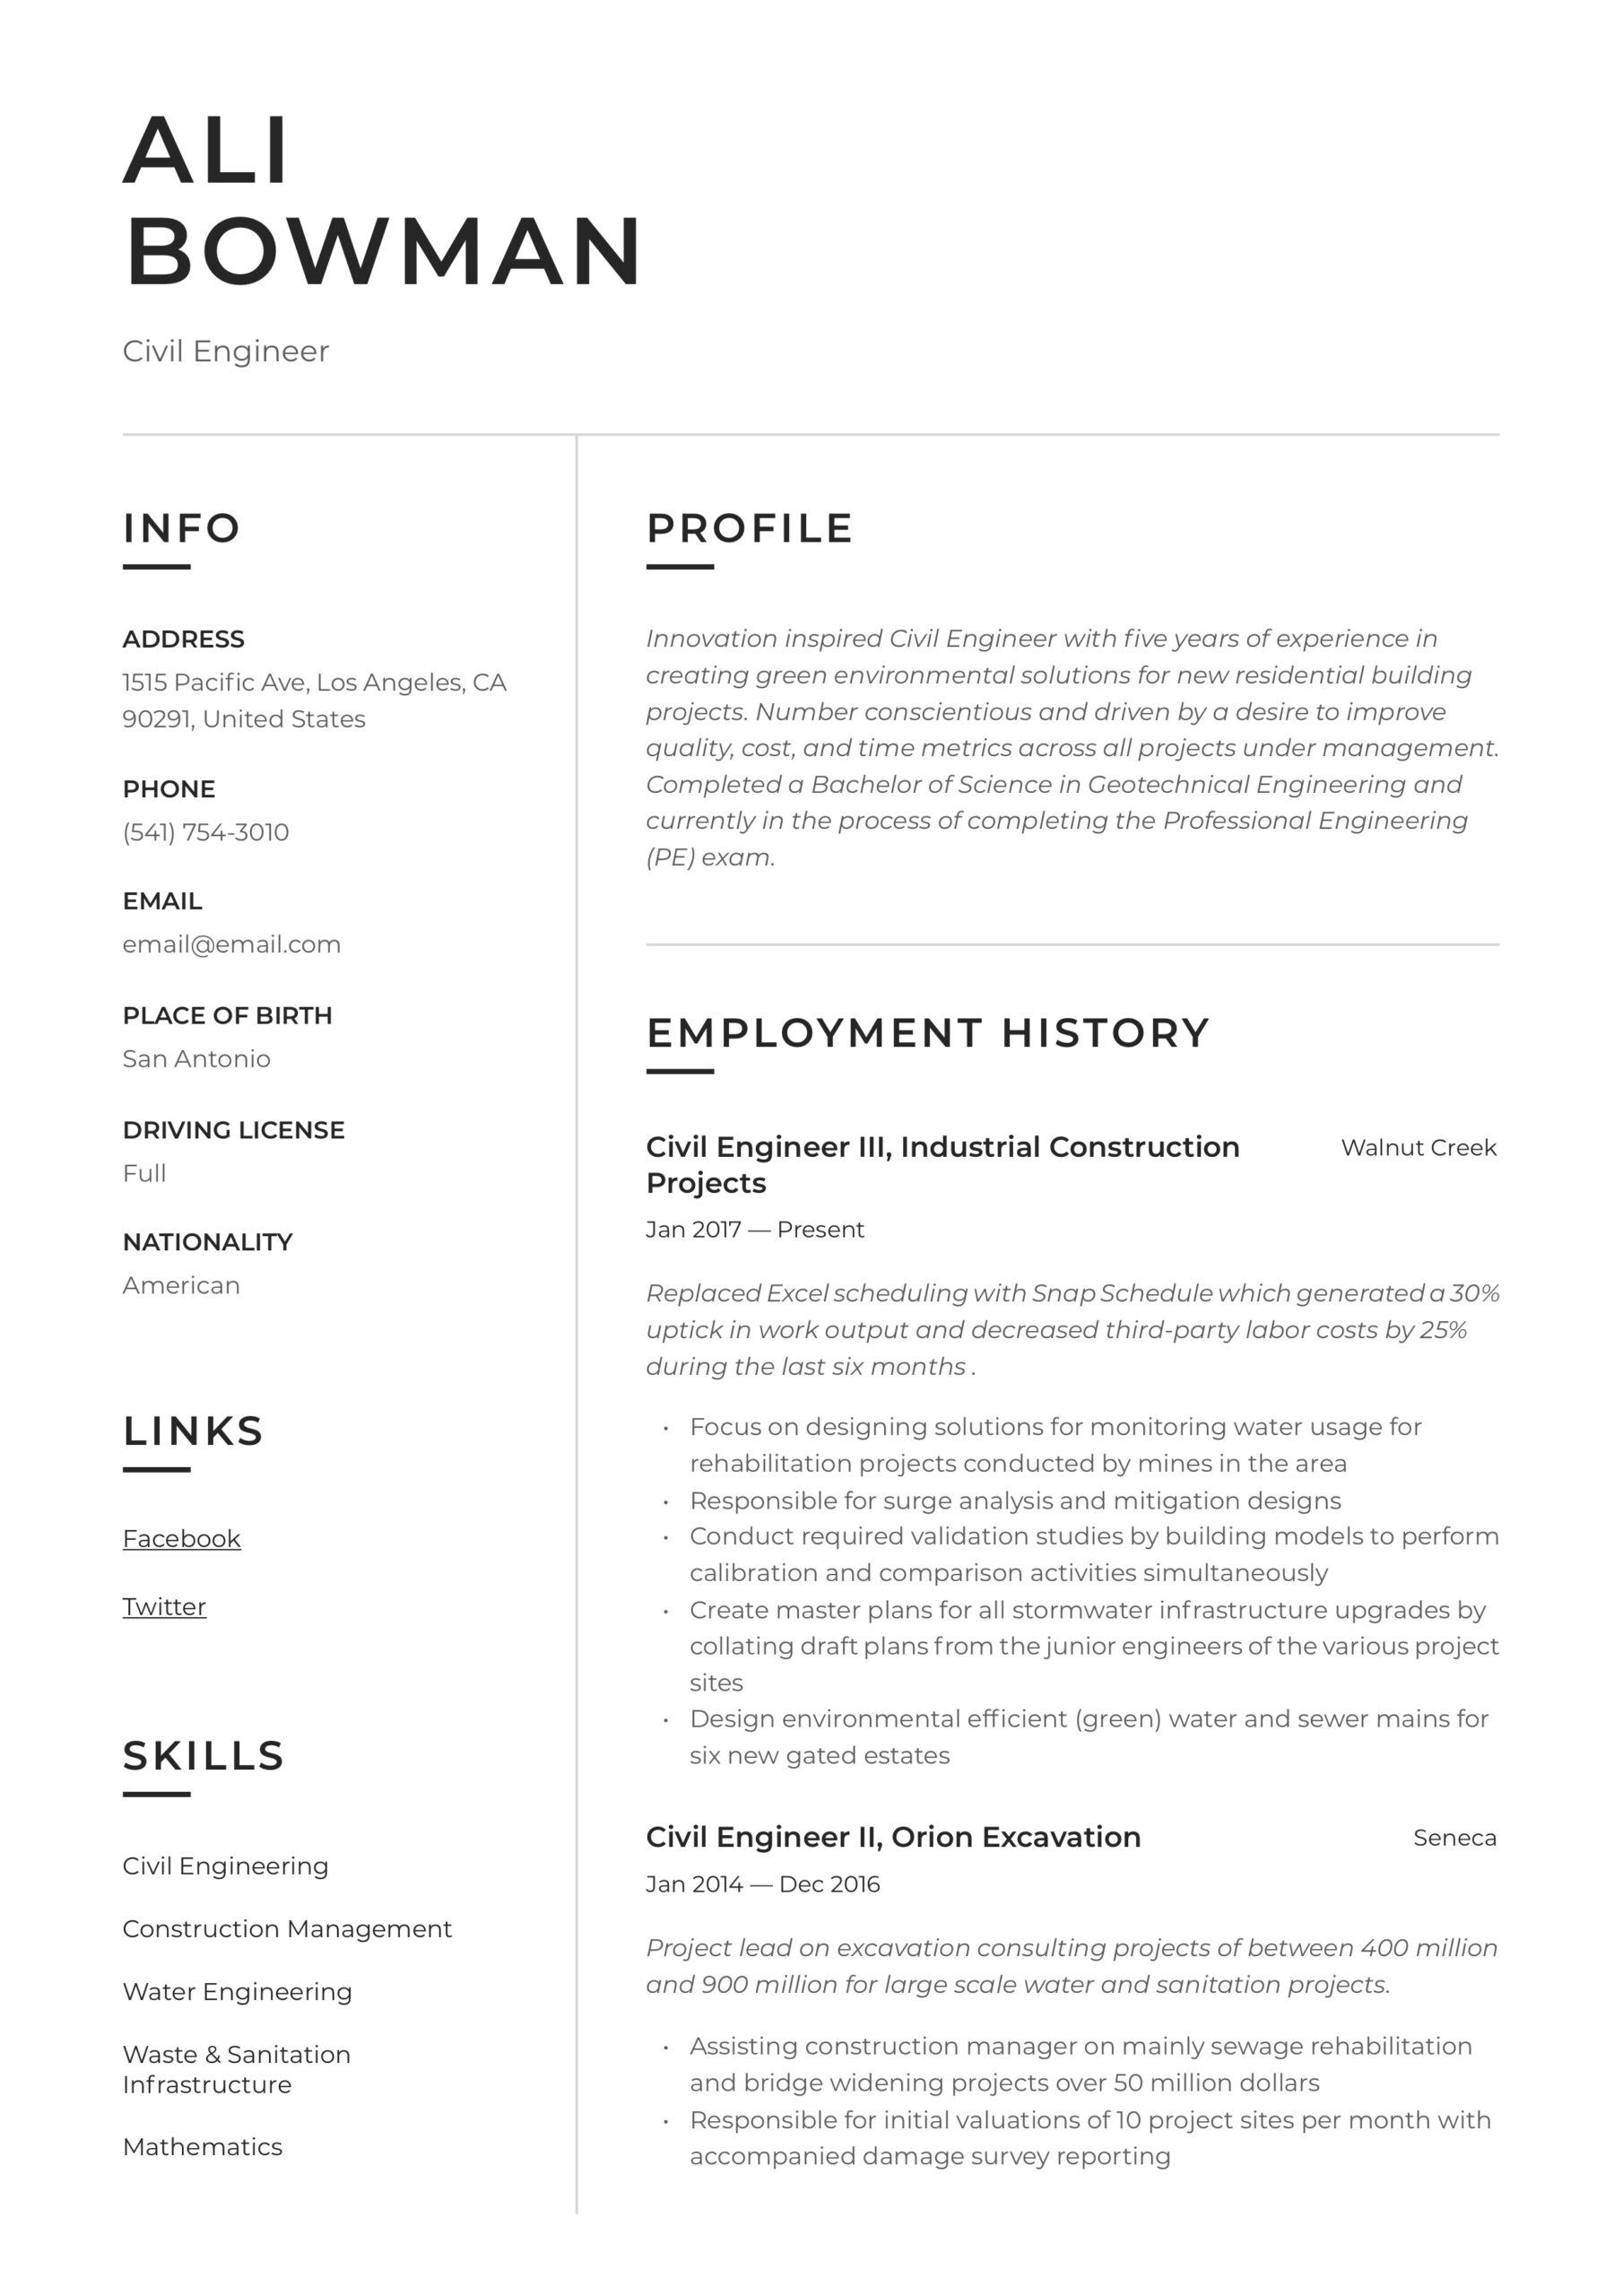 civil engineer resume writing guide templates job description for cable technician sample Resume Civil Engineer Job Description For Resume